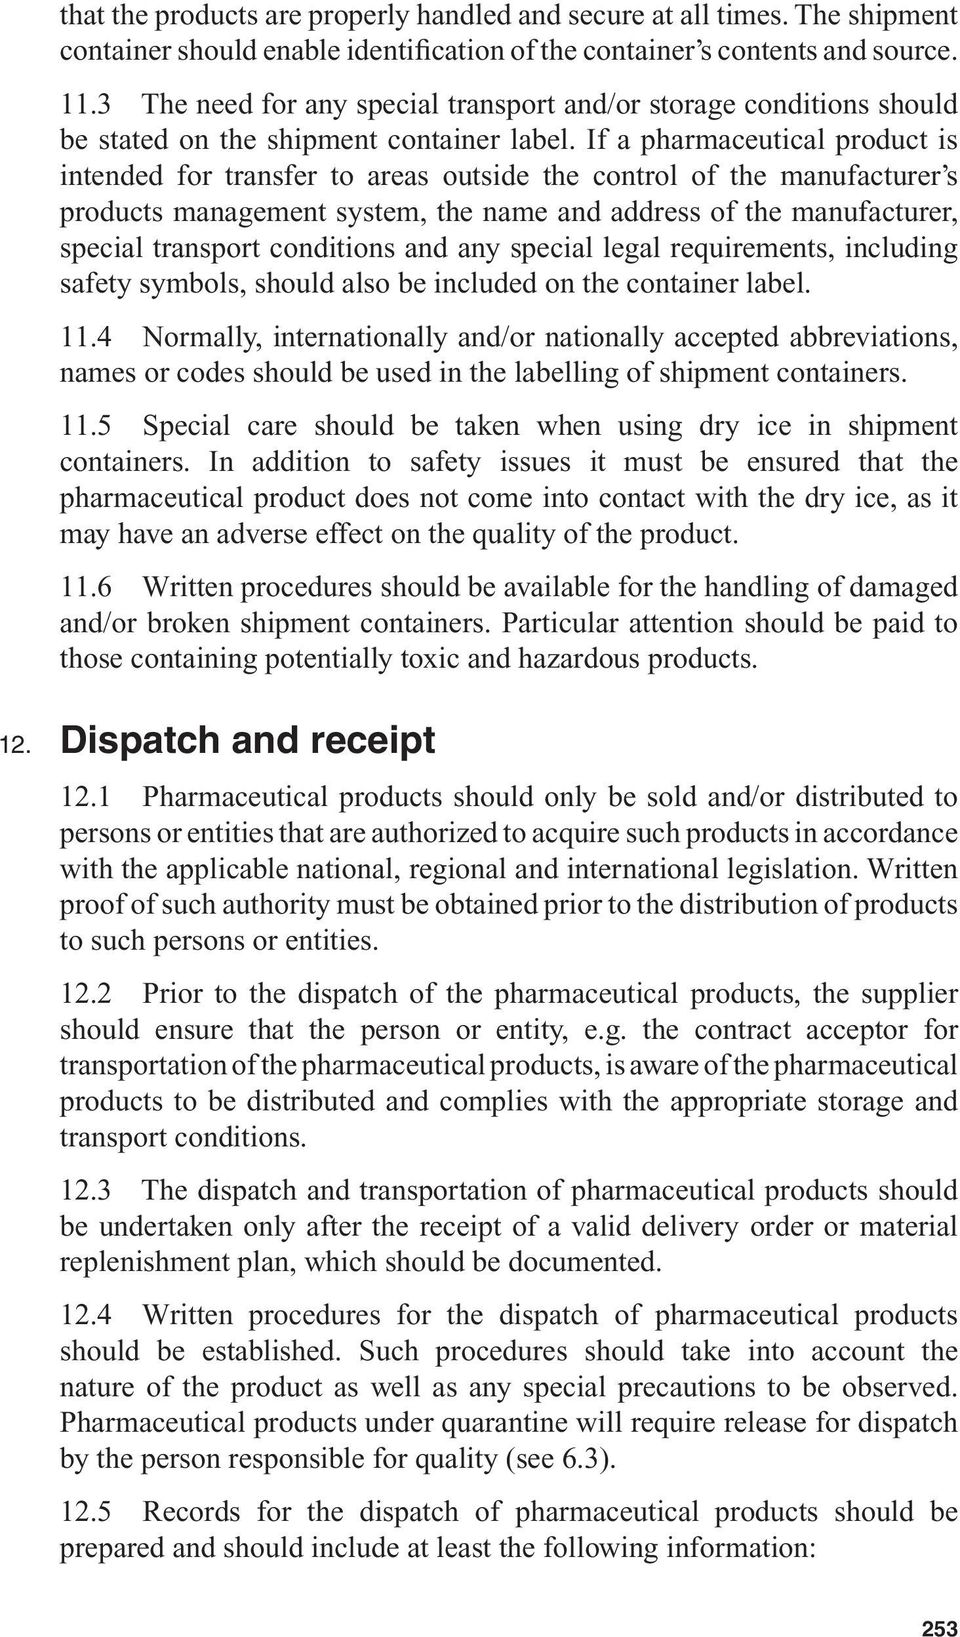 If a pharmaceutical product is intended for transfer to areas outside the control of the manufacturer s products management system, the name and address of the manufacturer, special transport